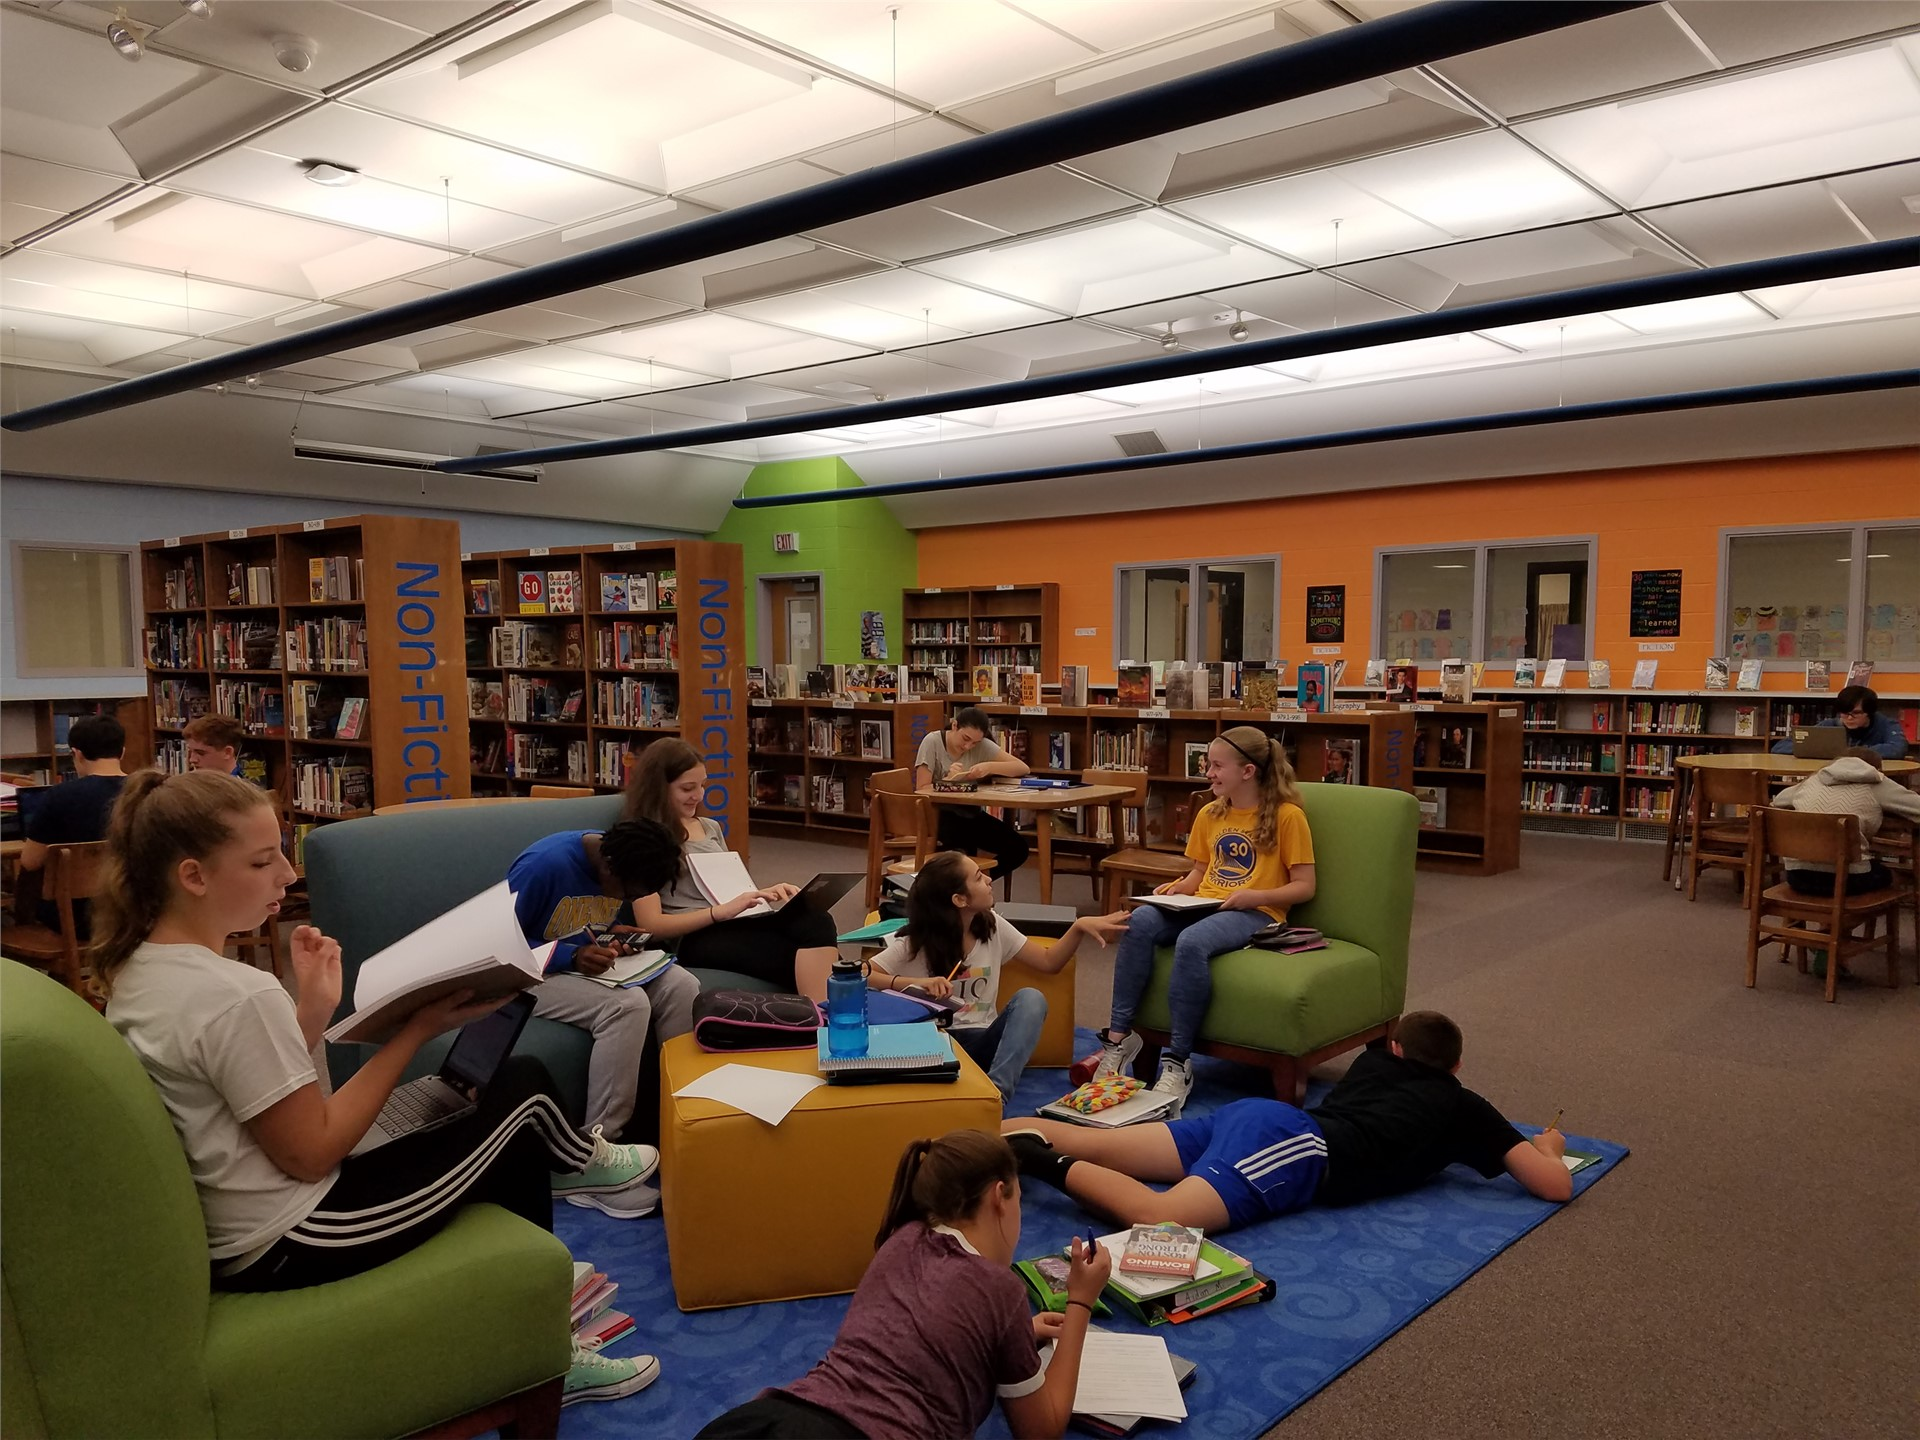 Students hanging out on comfortable furniture in the library